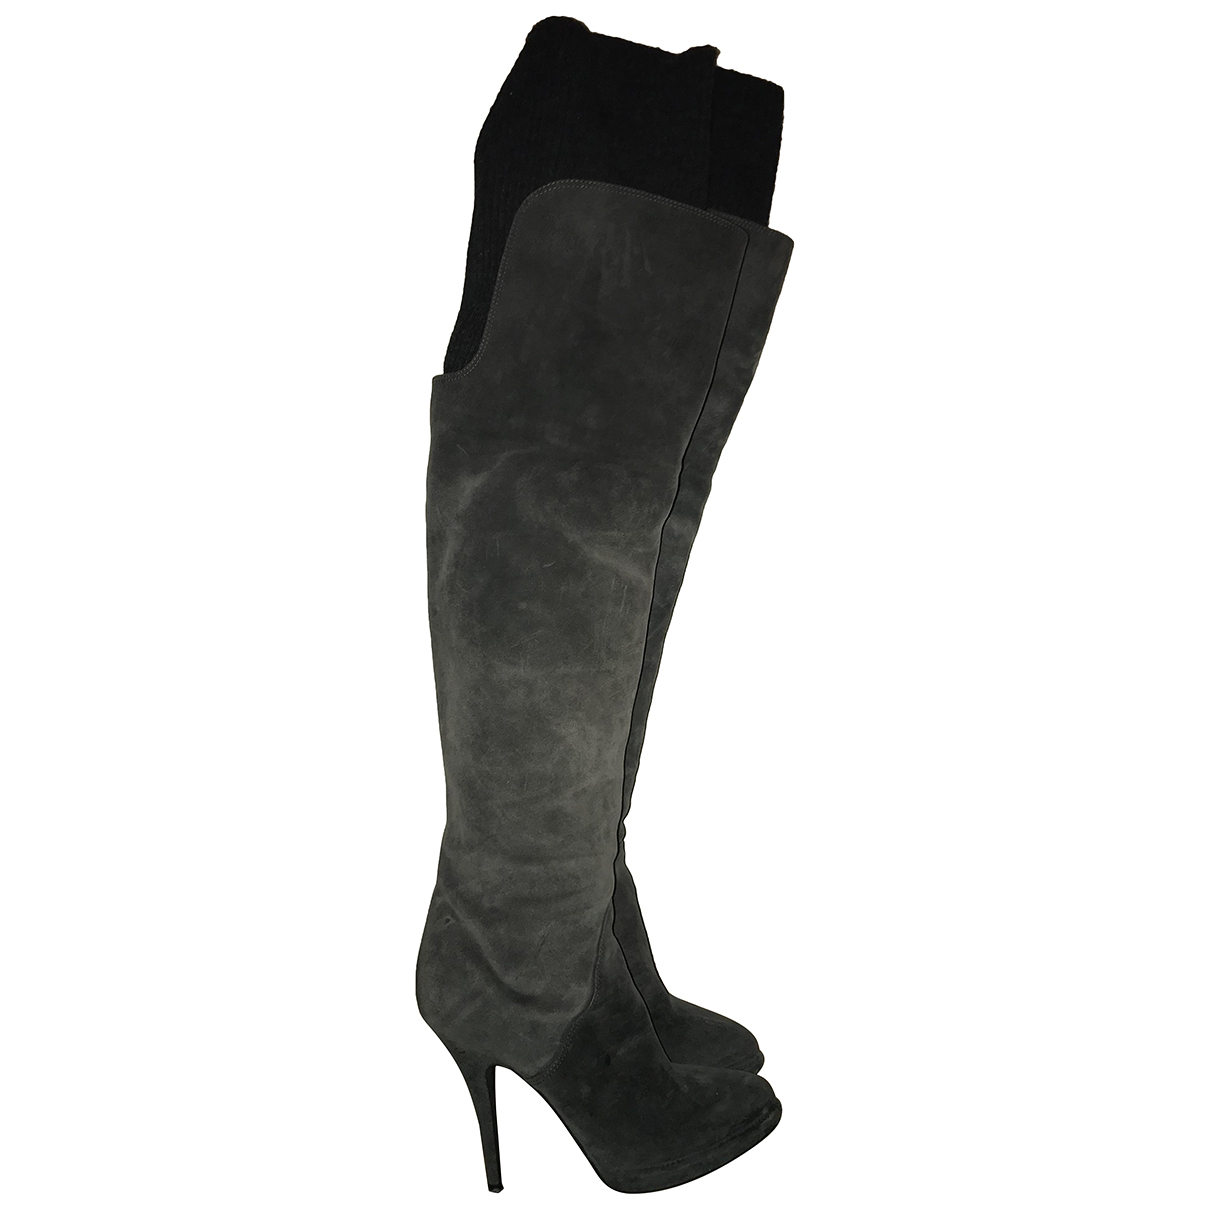 Givenchy N Anthracite Suede Boots for Women 39.5 EU